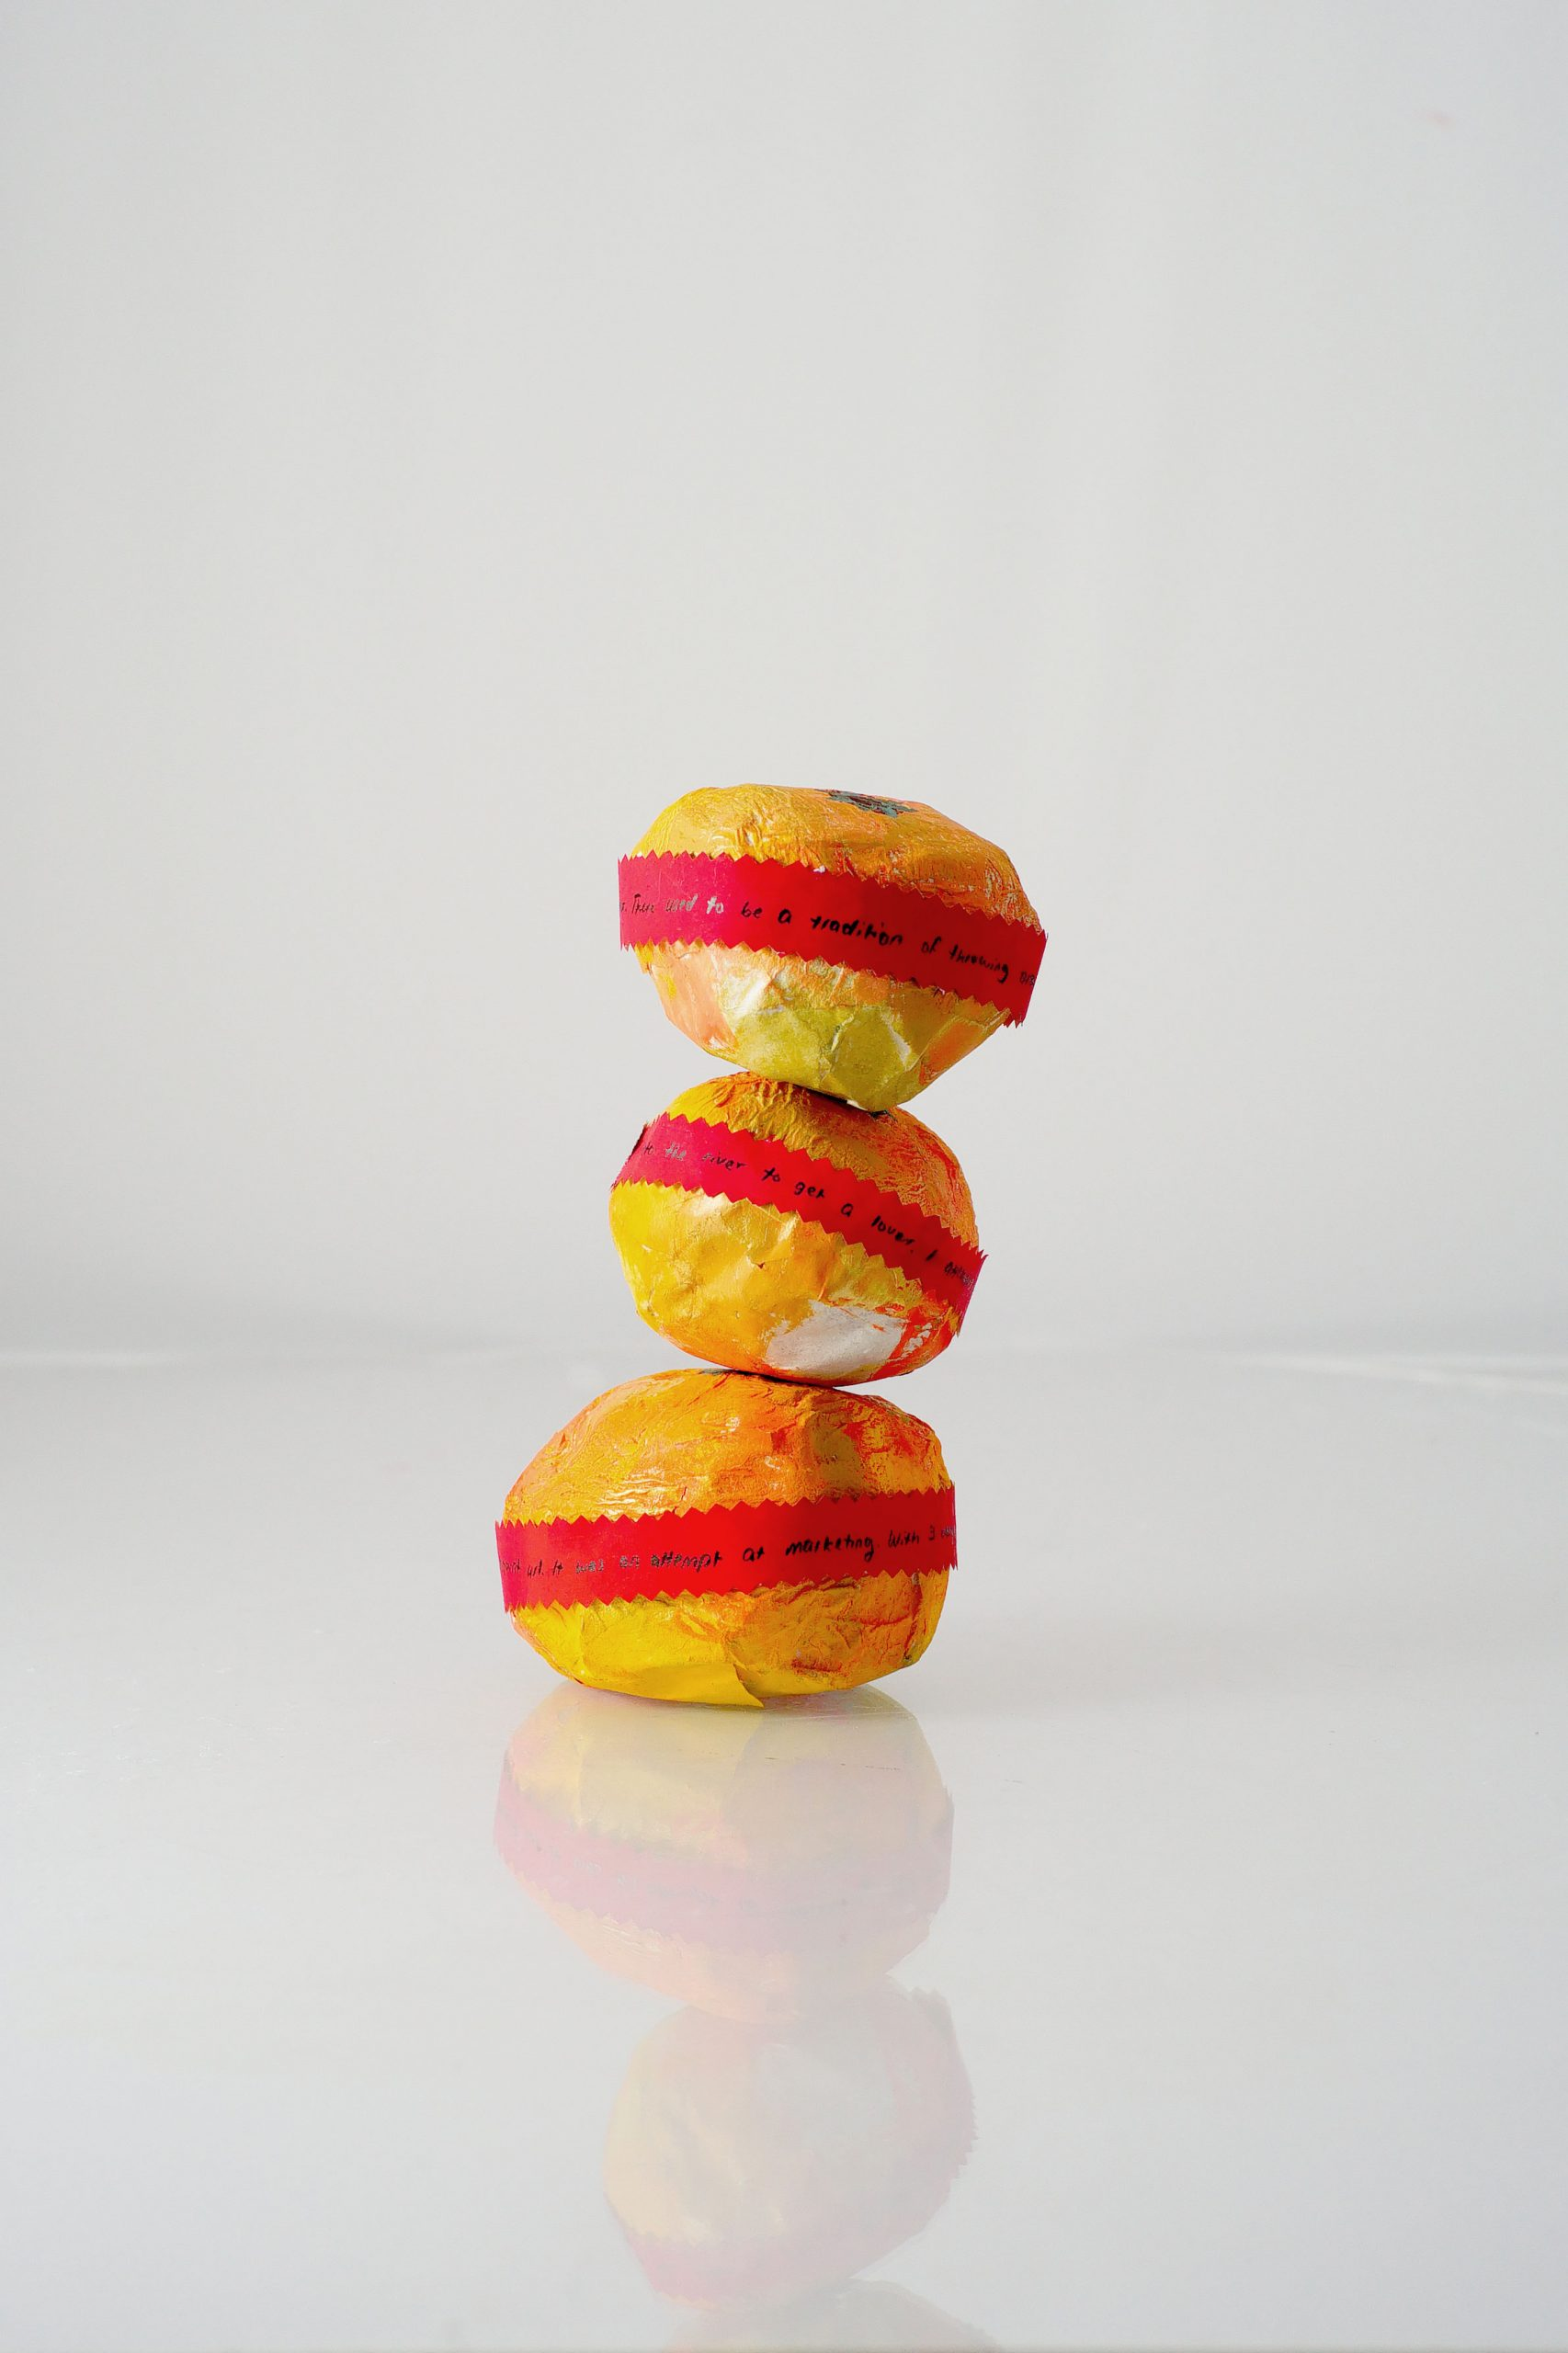 Orange sculpture, stacked